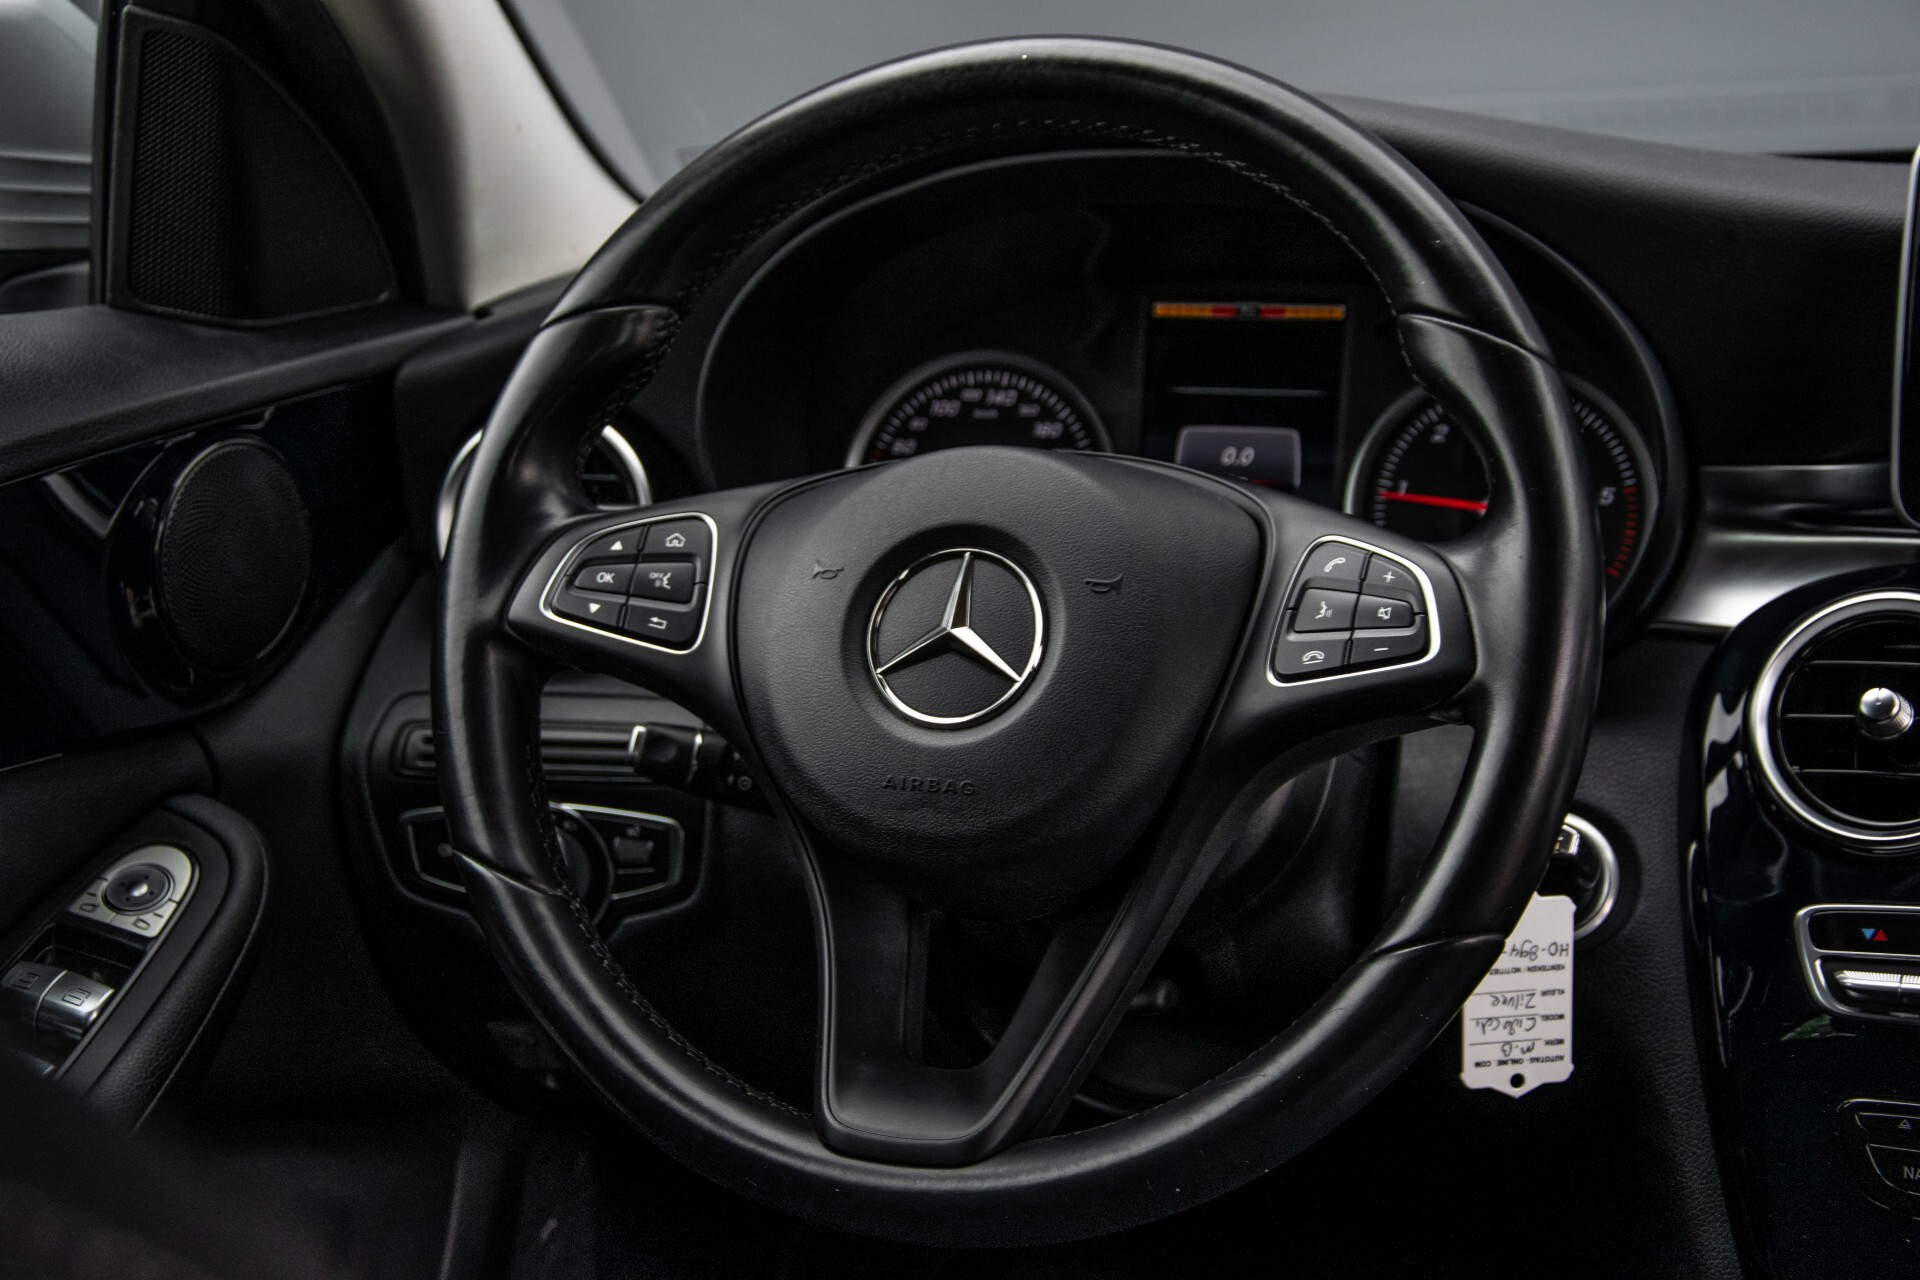 Mercedes-Benz C-Klasse 180 Bluetec Lease Edition Intelligent Light System/Cruise Control/Navi Foto 8